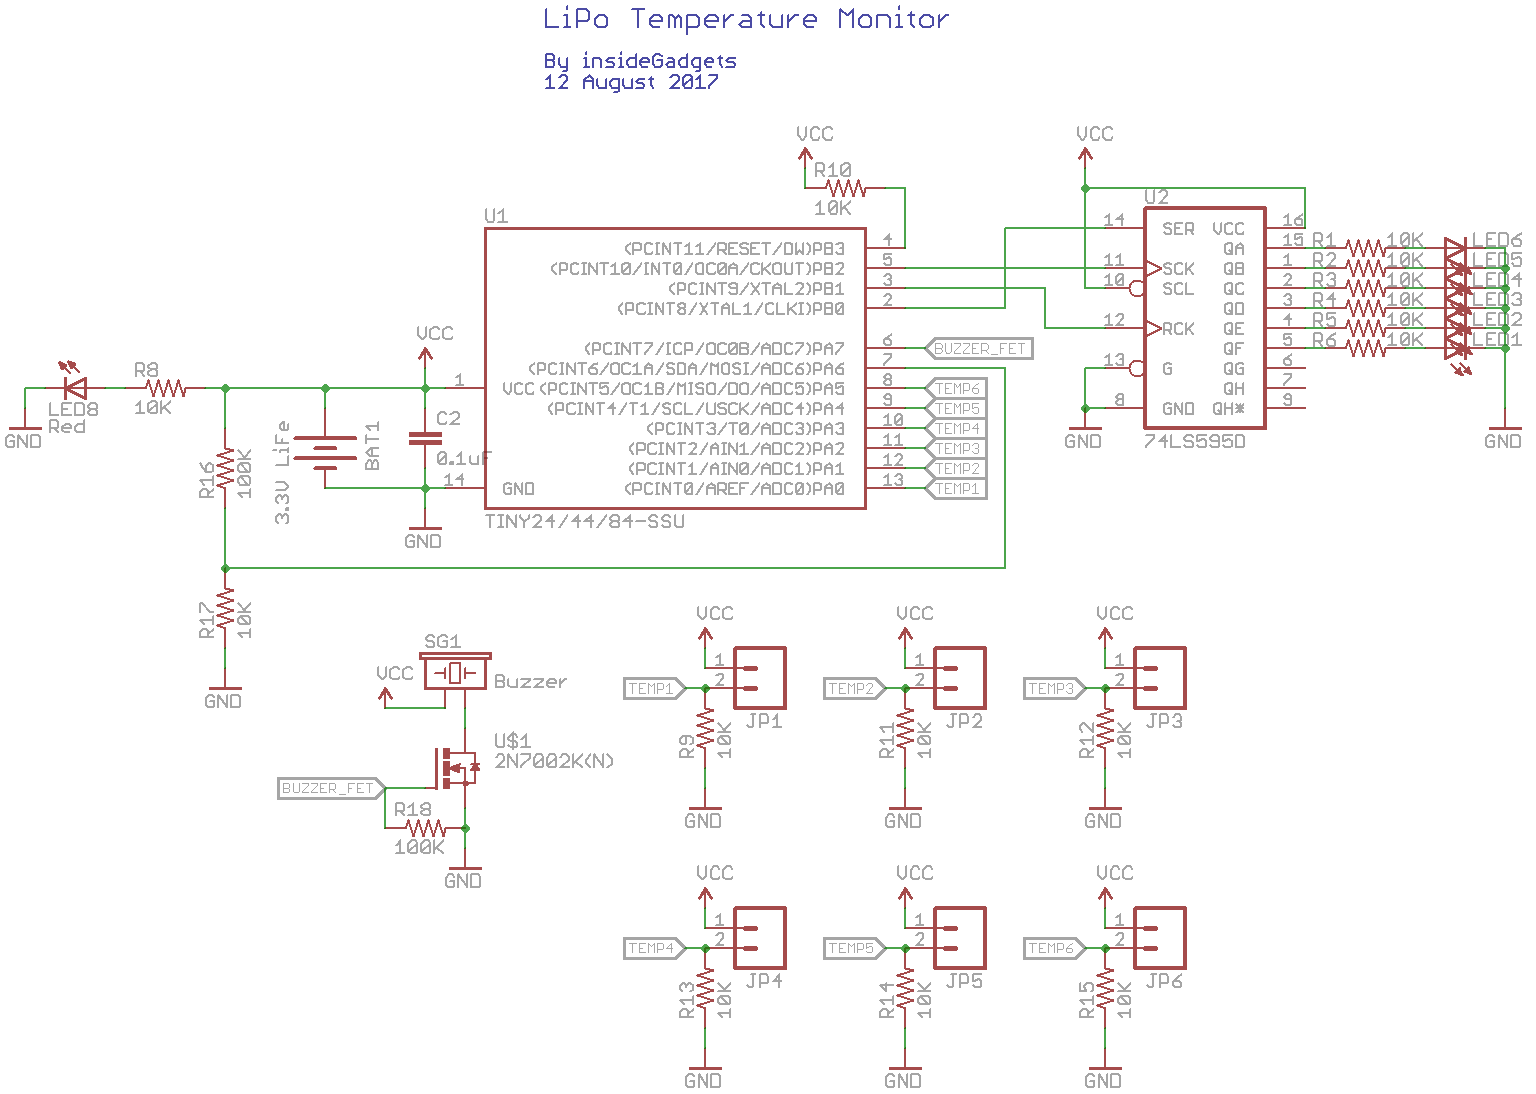 Building A Lipo Charging Temperature Monitor Insidegadgets Circuit Diagram Thermistor Download The Eagle Schematic Board Layout For Milling And Code Temp V01